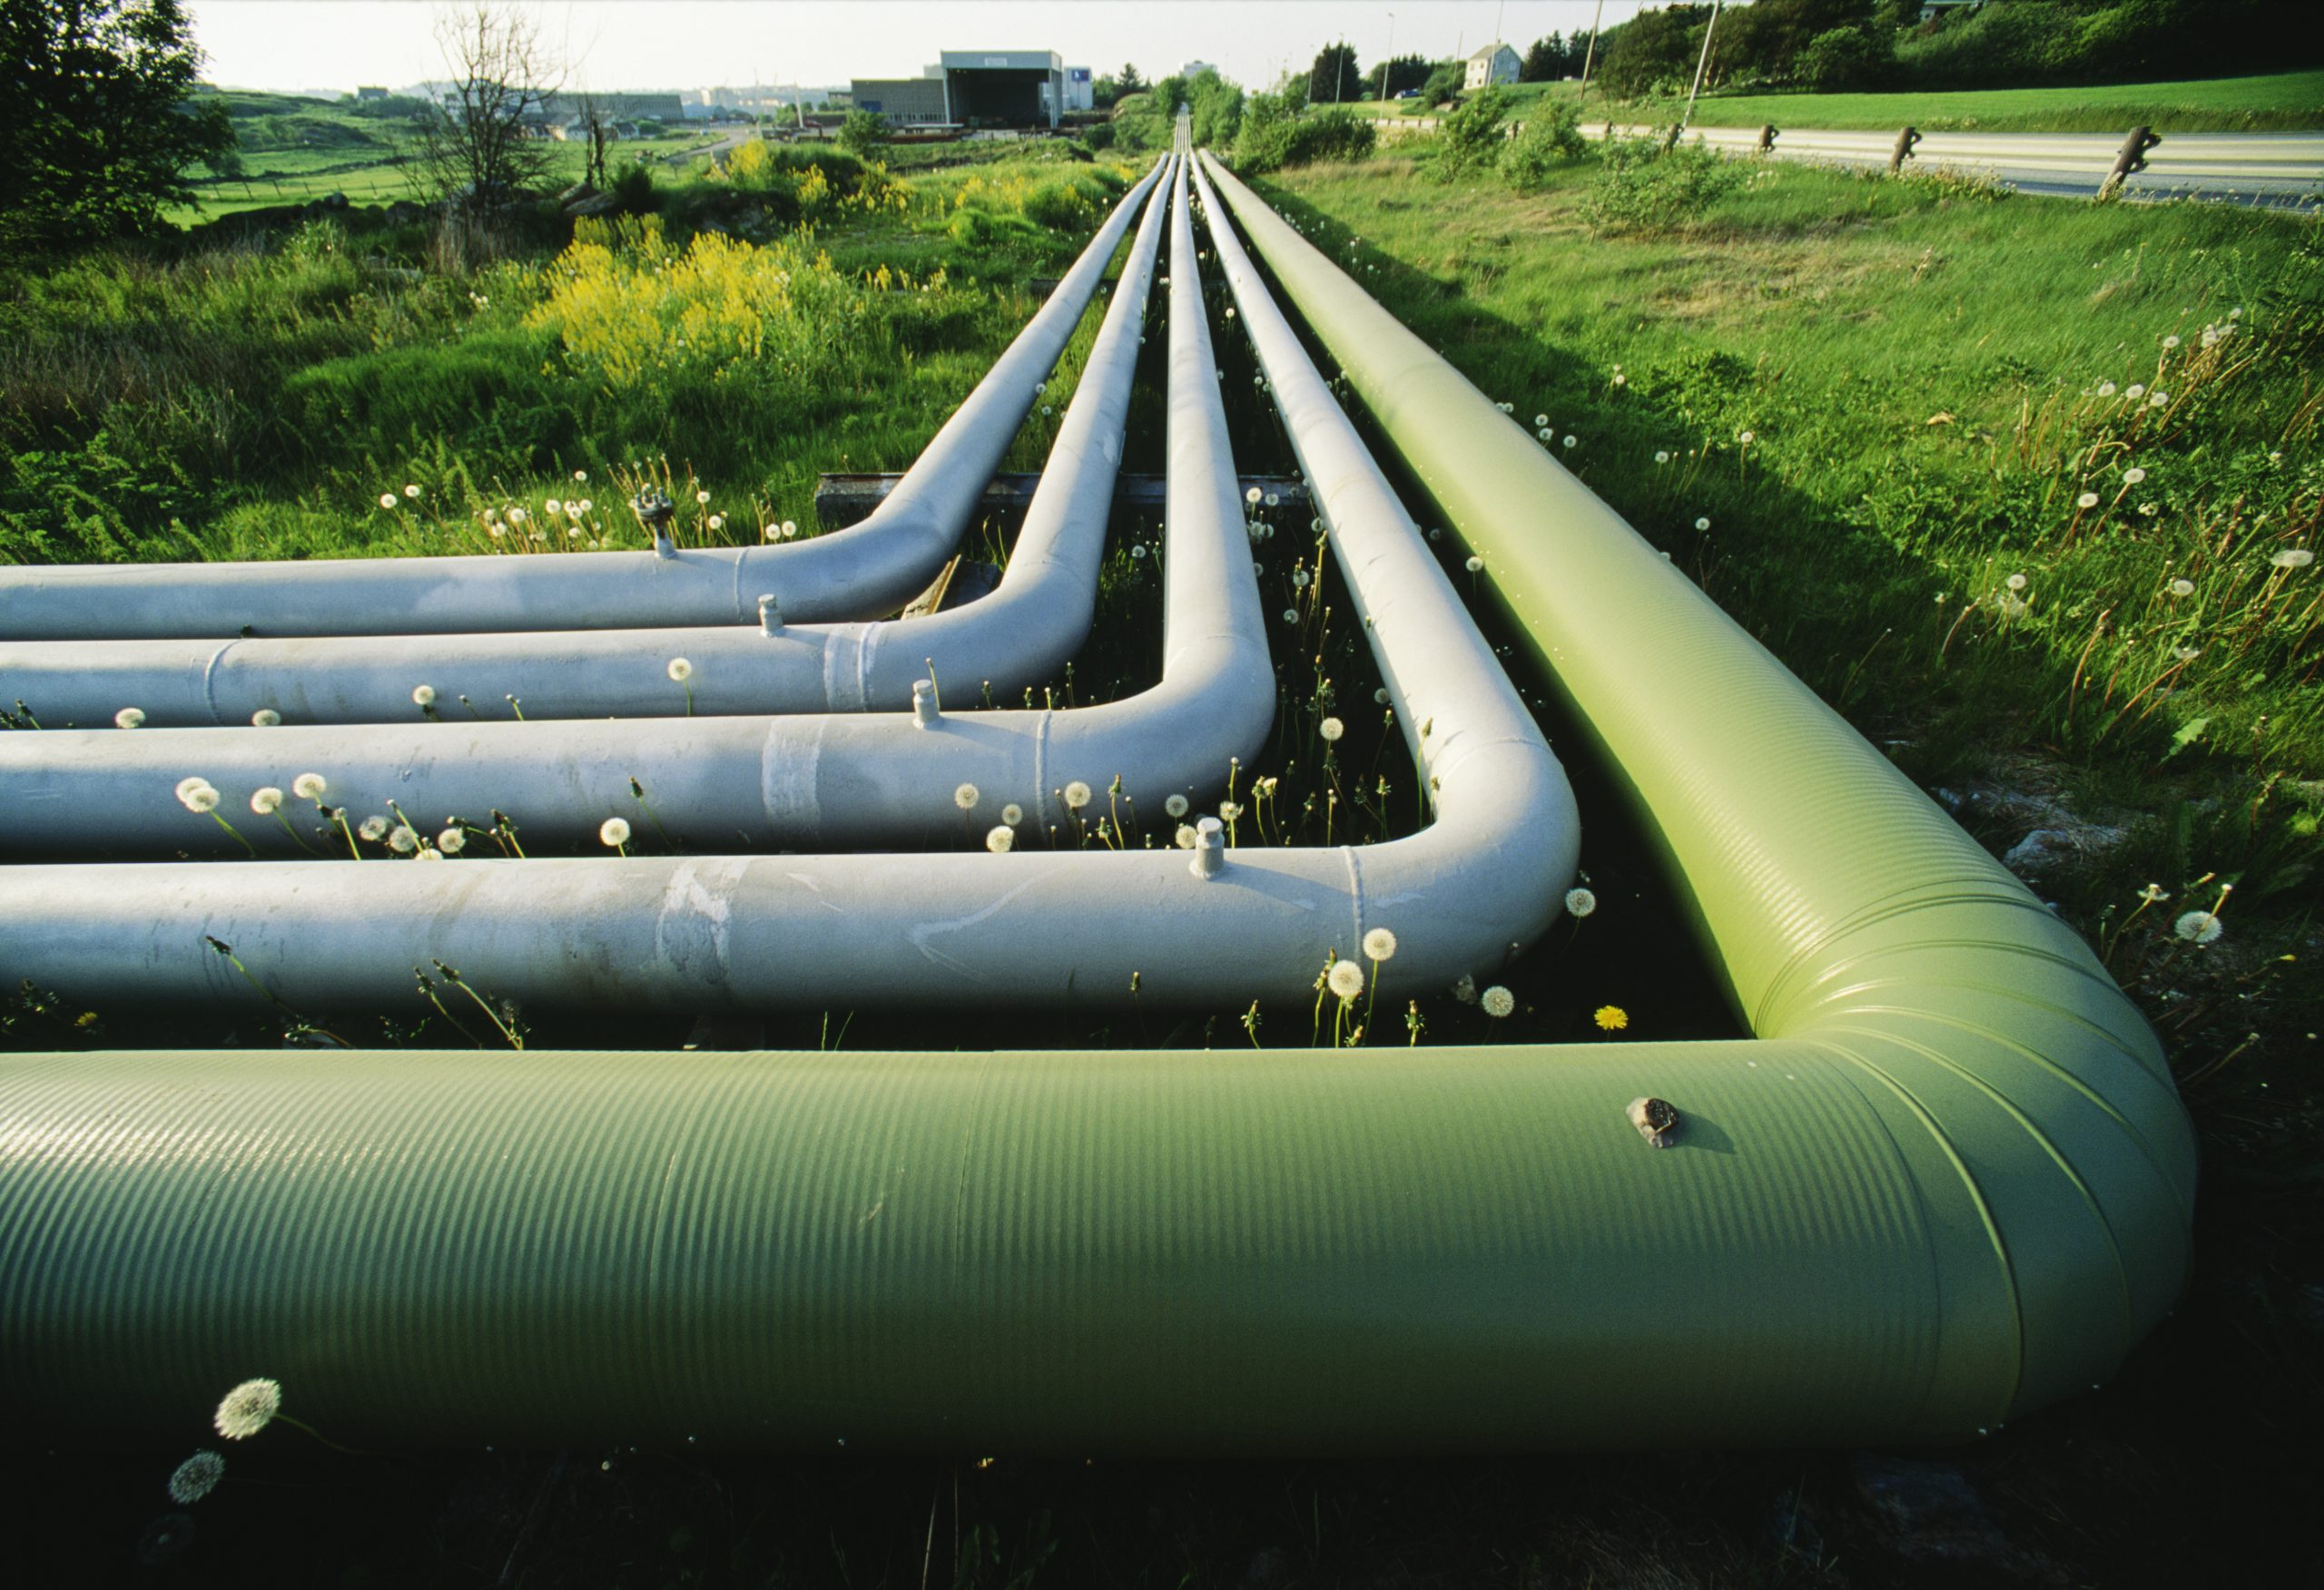 Russian gas flow strategy back in focus